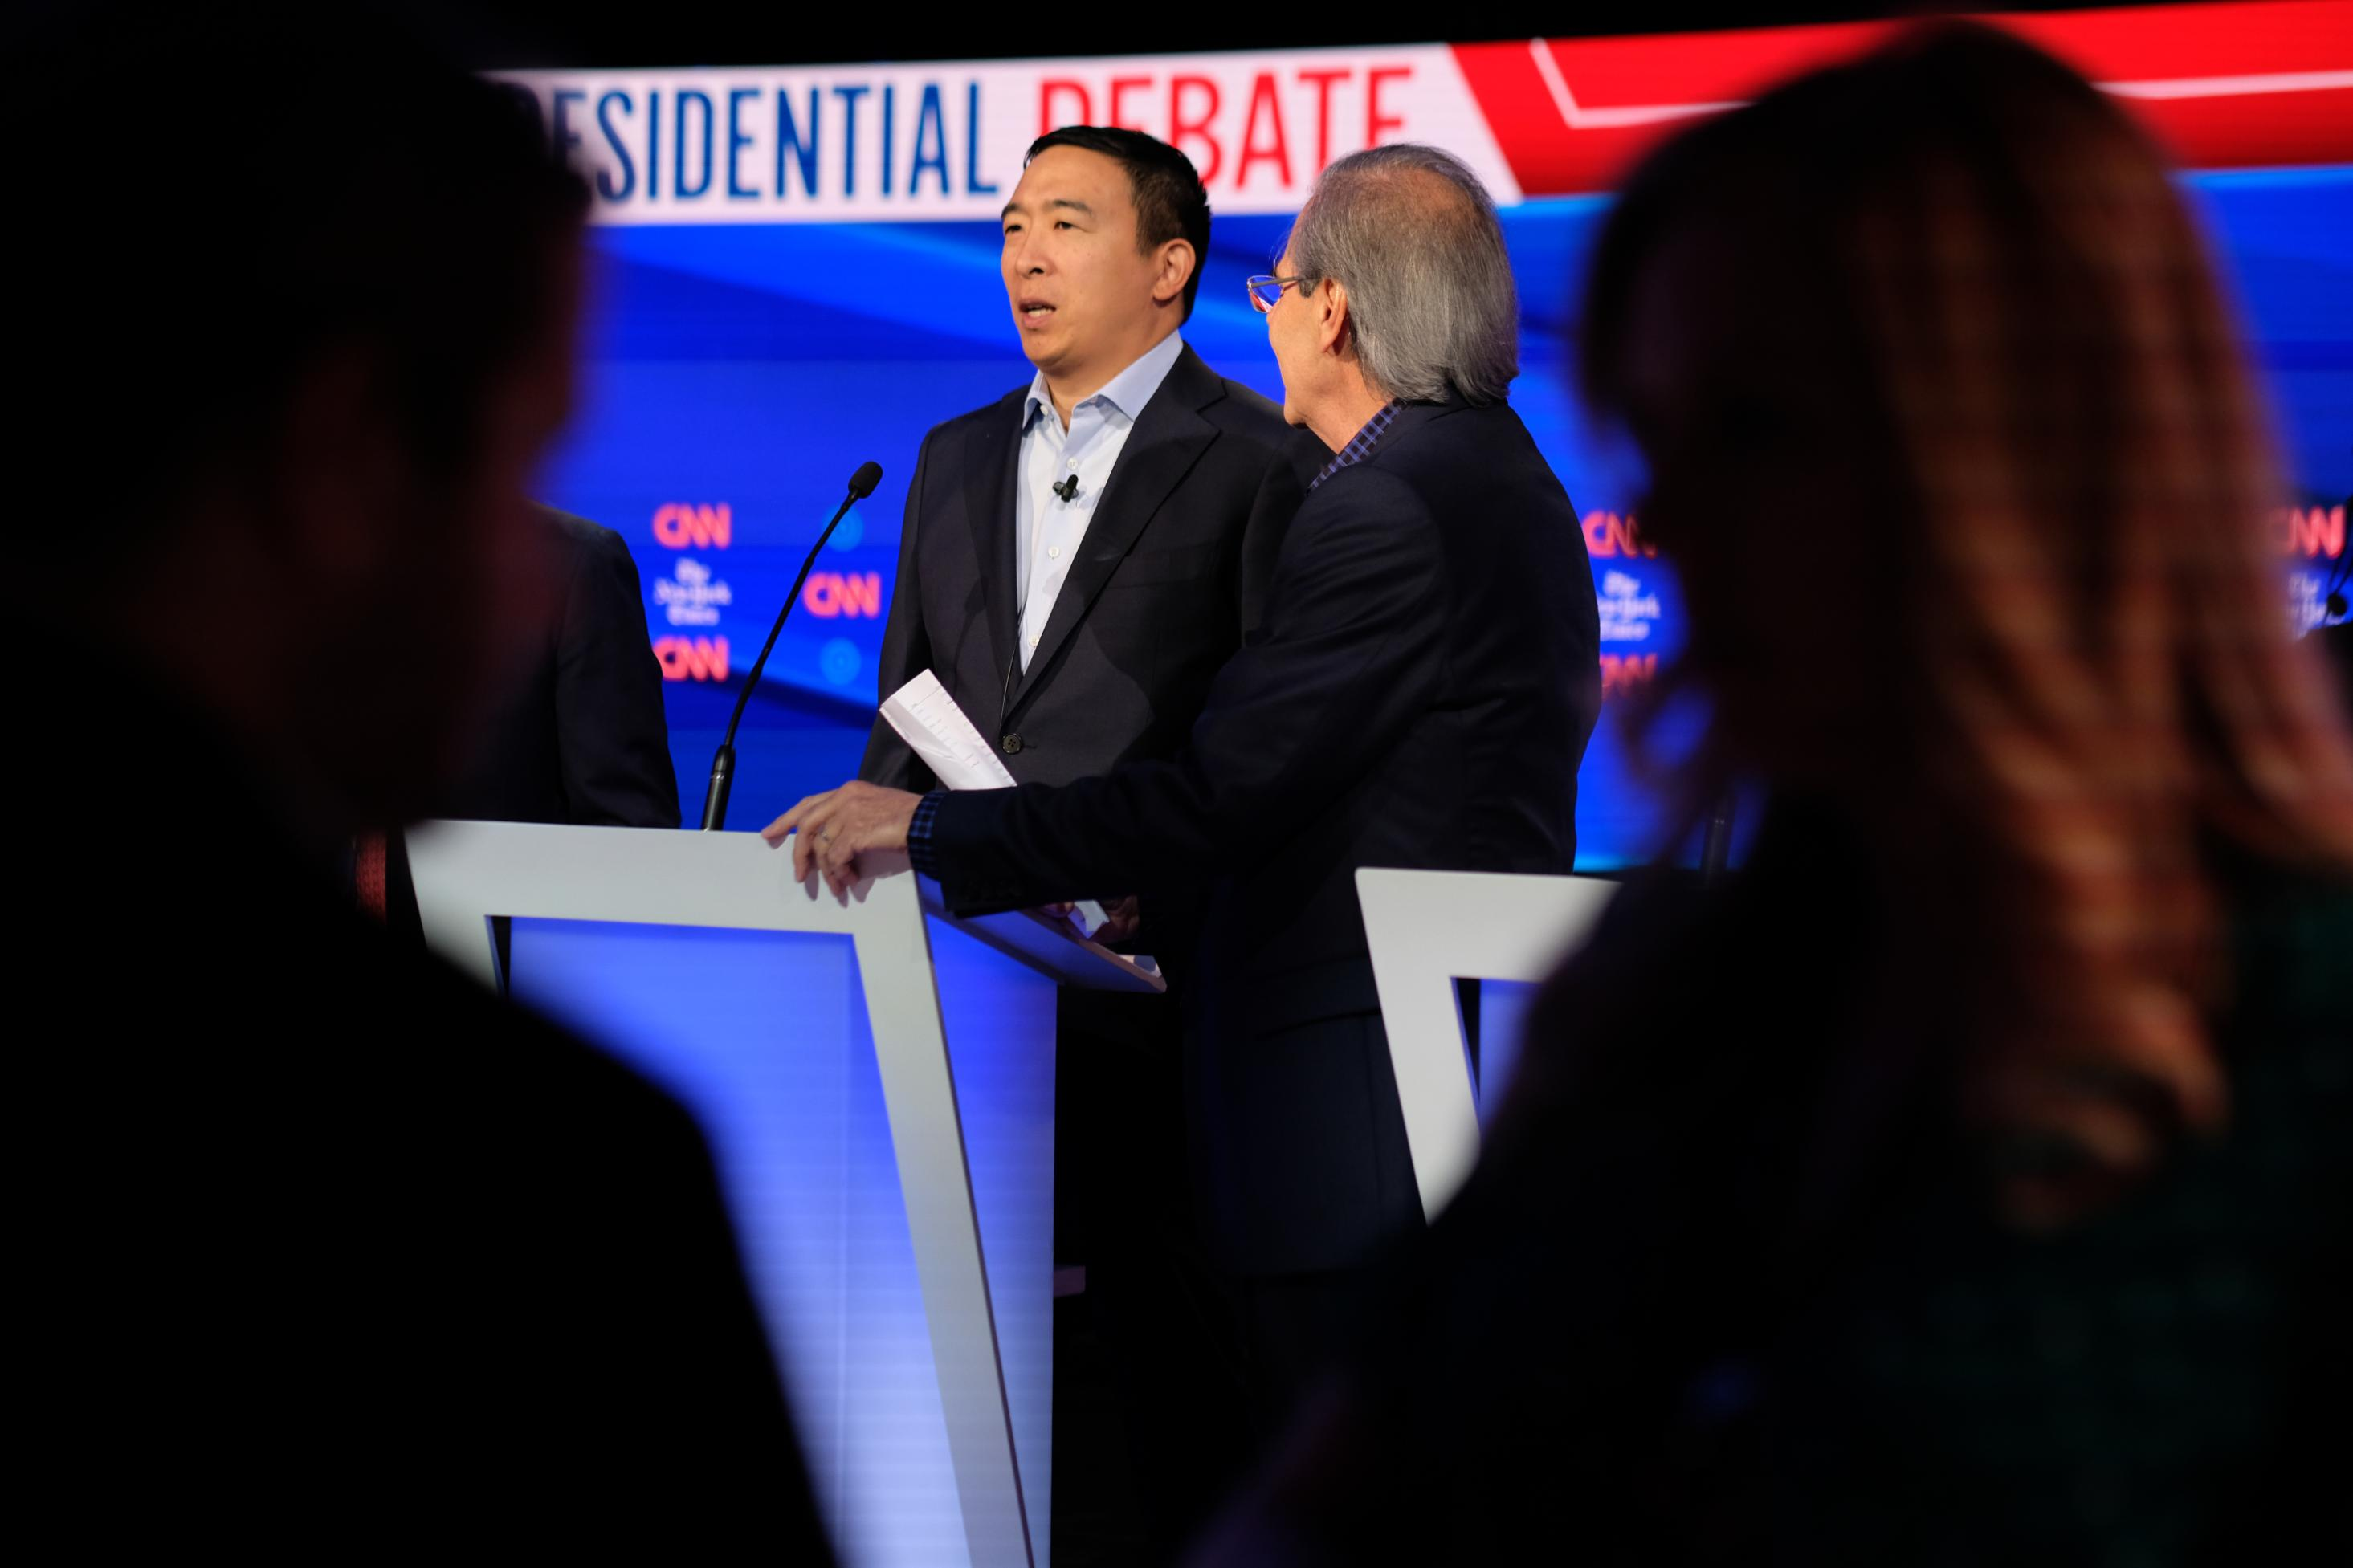 Andrew Yang qualifies for December debate stage with latest poll